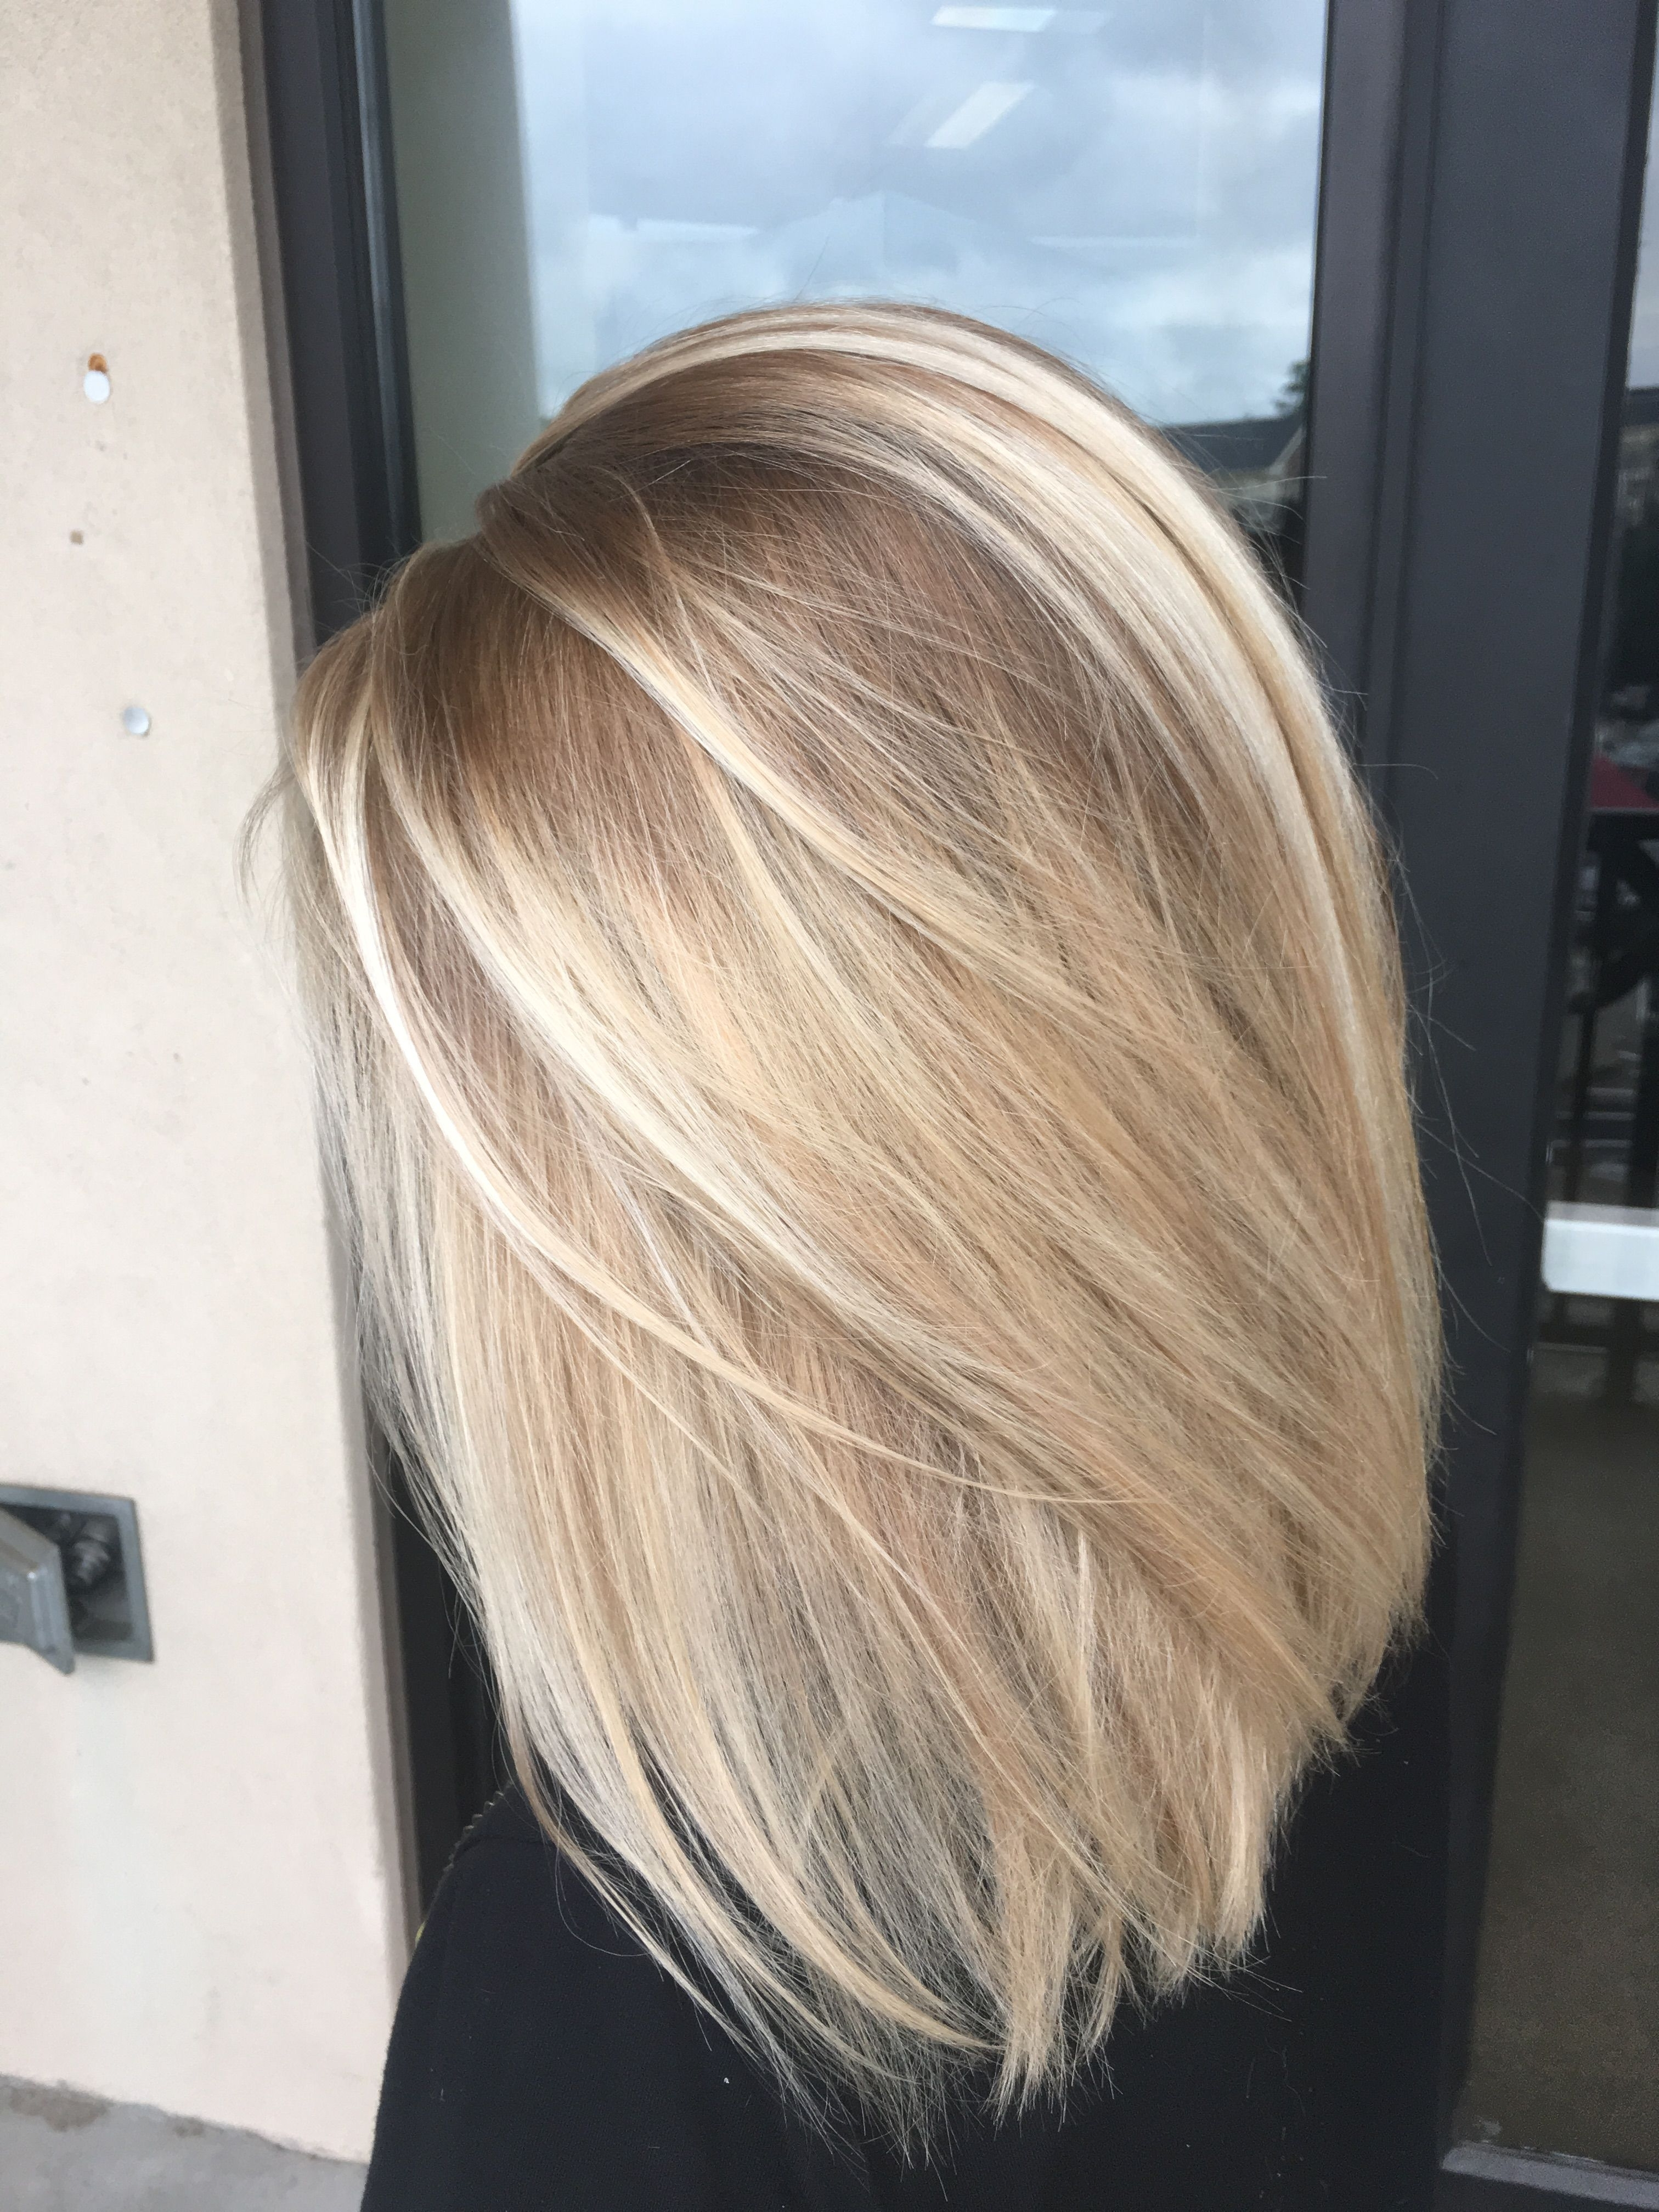 Most Current Ashy Blonde Pixie Hairstyles With A Messy Touch Regarding Blonde Hair, Shadow Root, Dark To Blonde (View 13 of 20)